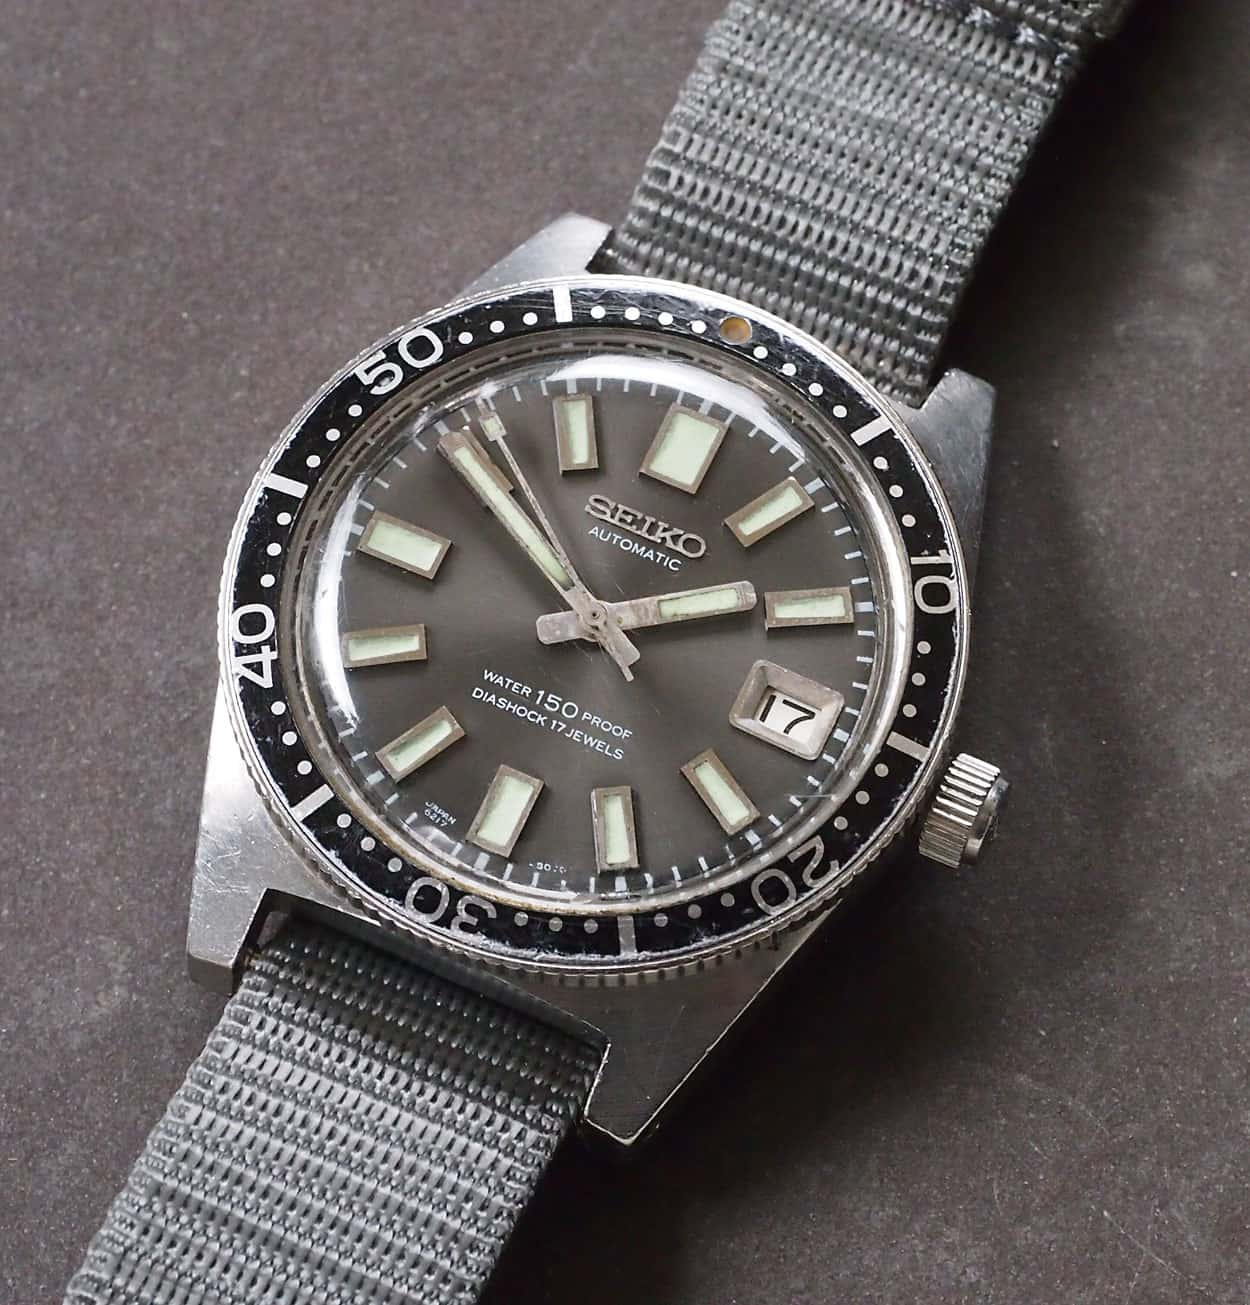 1965 Seiko 62MAS Diver, one of Mr. Hattori's favorite historic Seiko watches